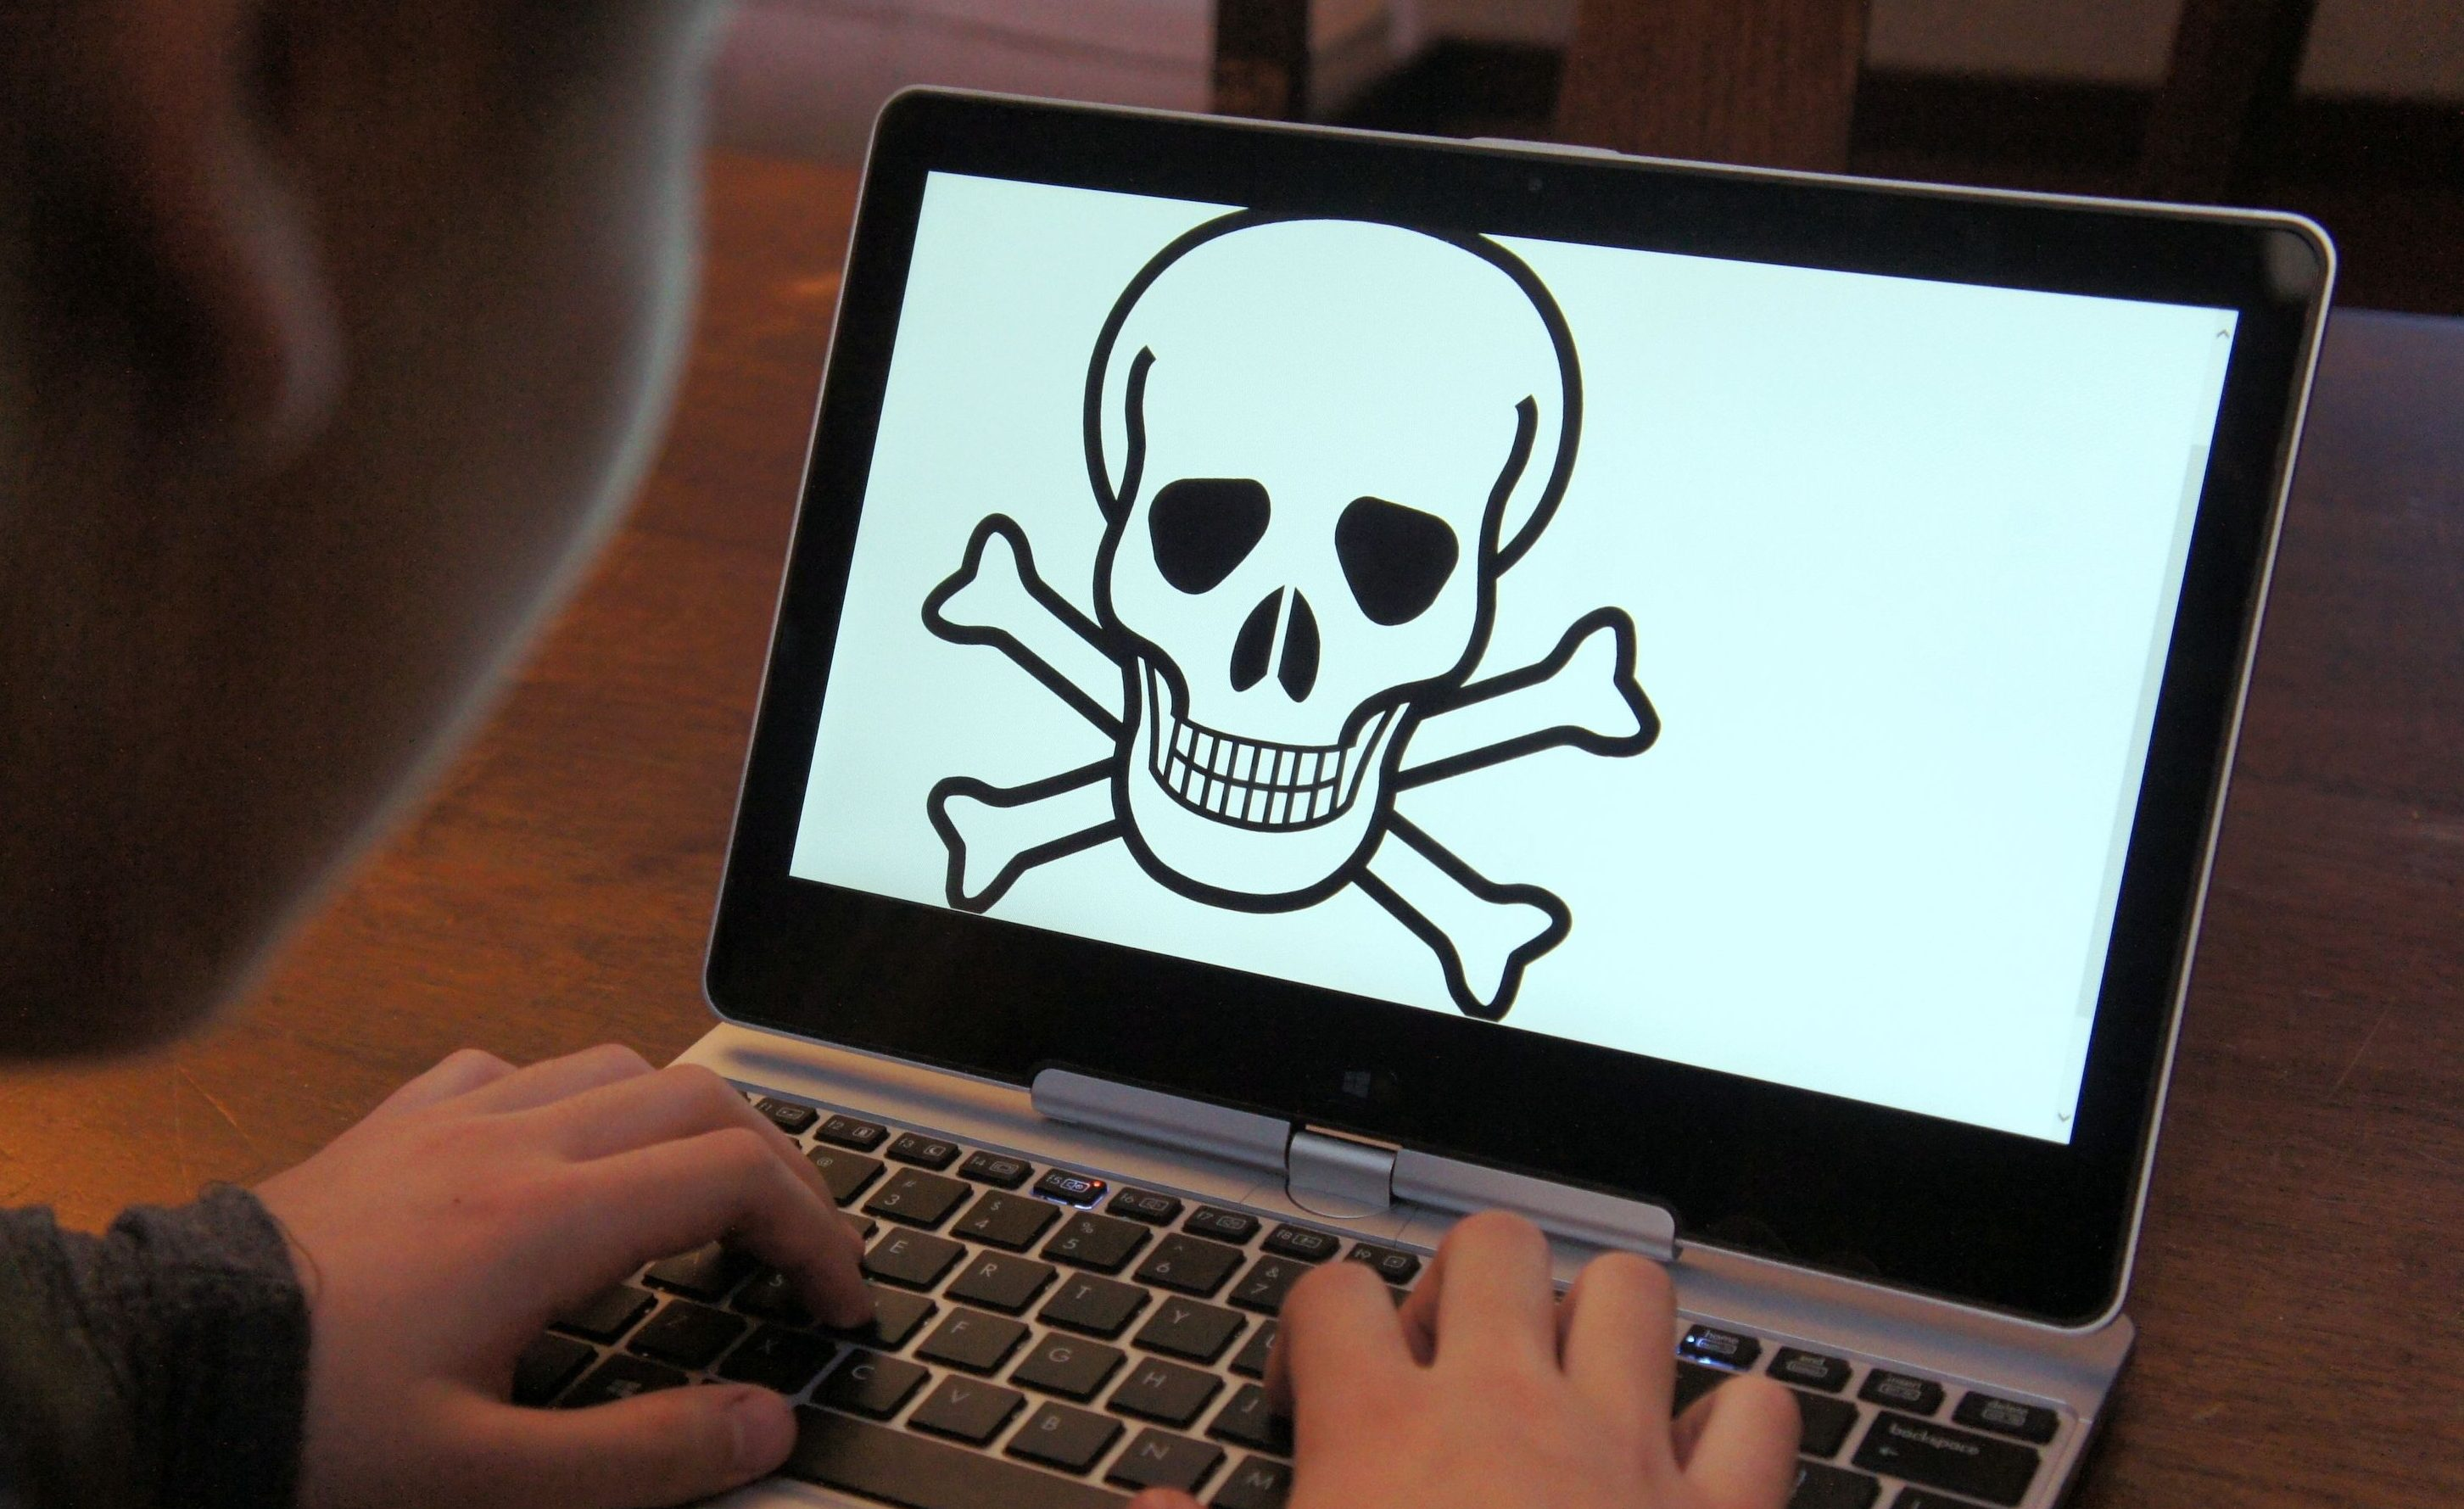 A child at a laptop with a skull and crossbones on the screen